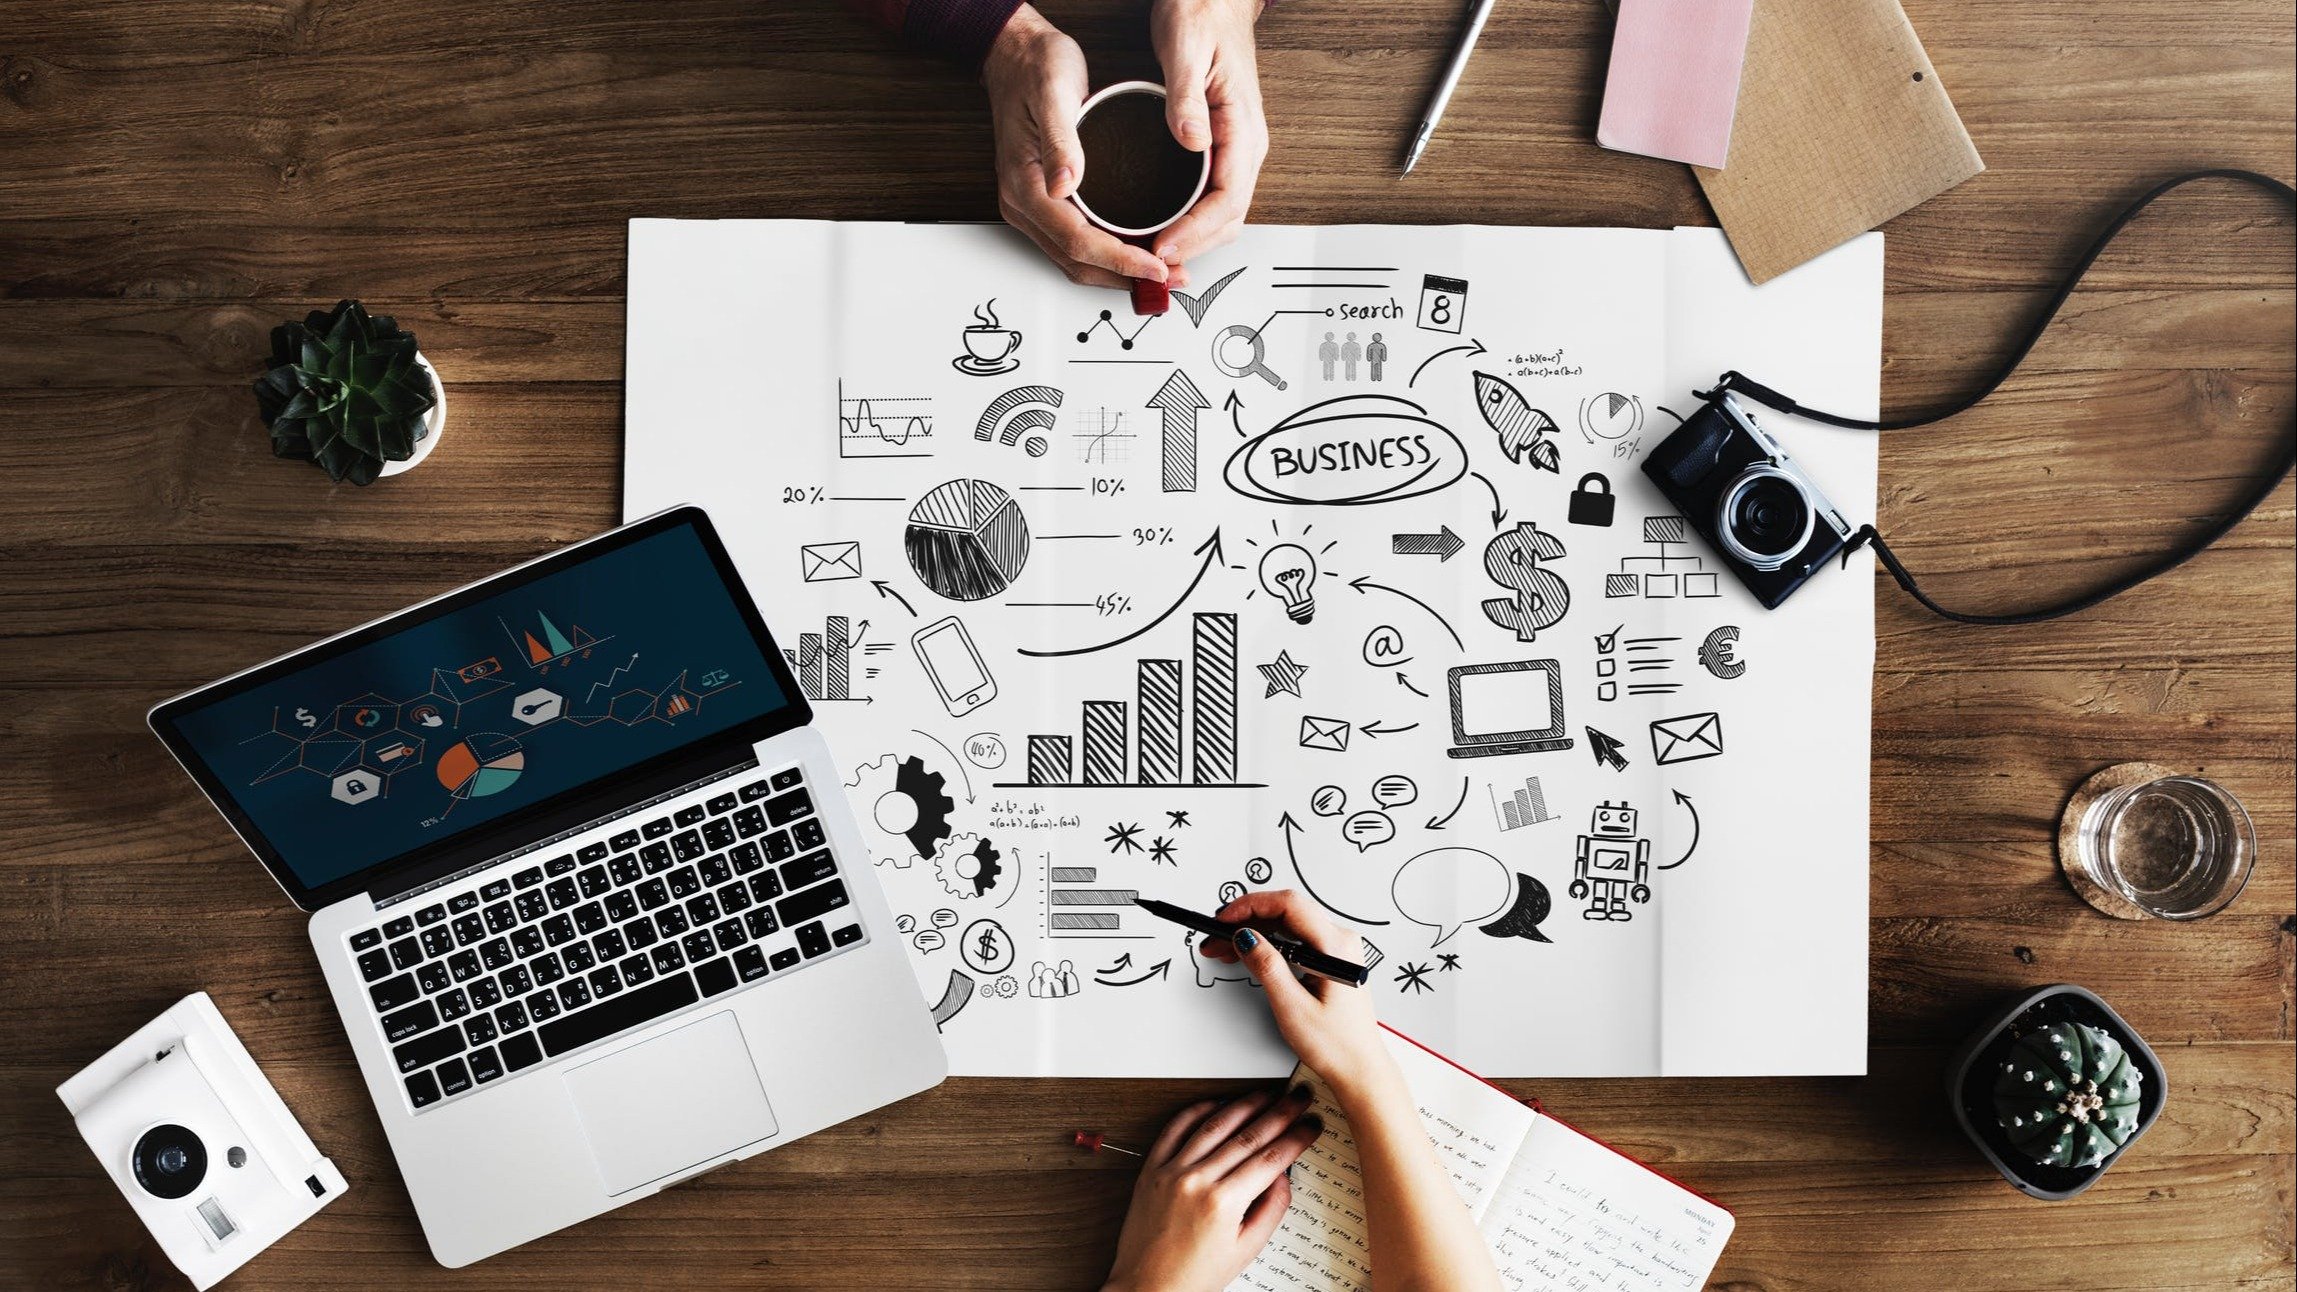 HR Trends to Watch in 2019